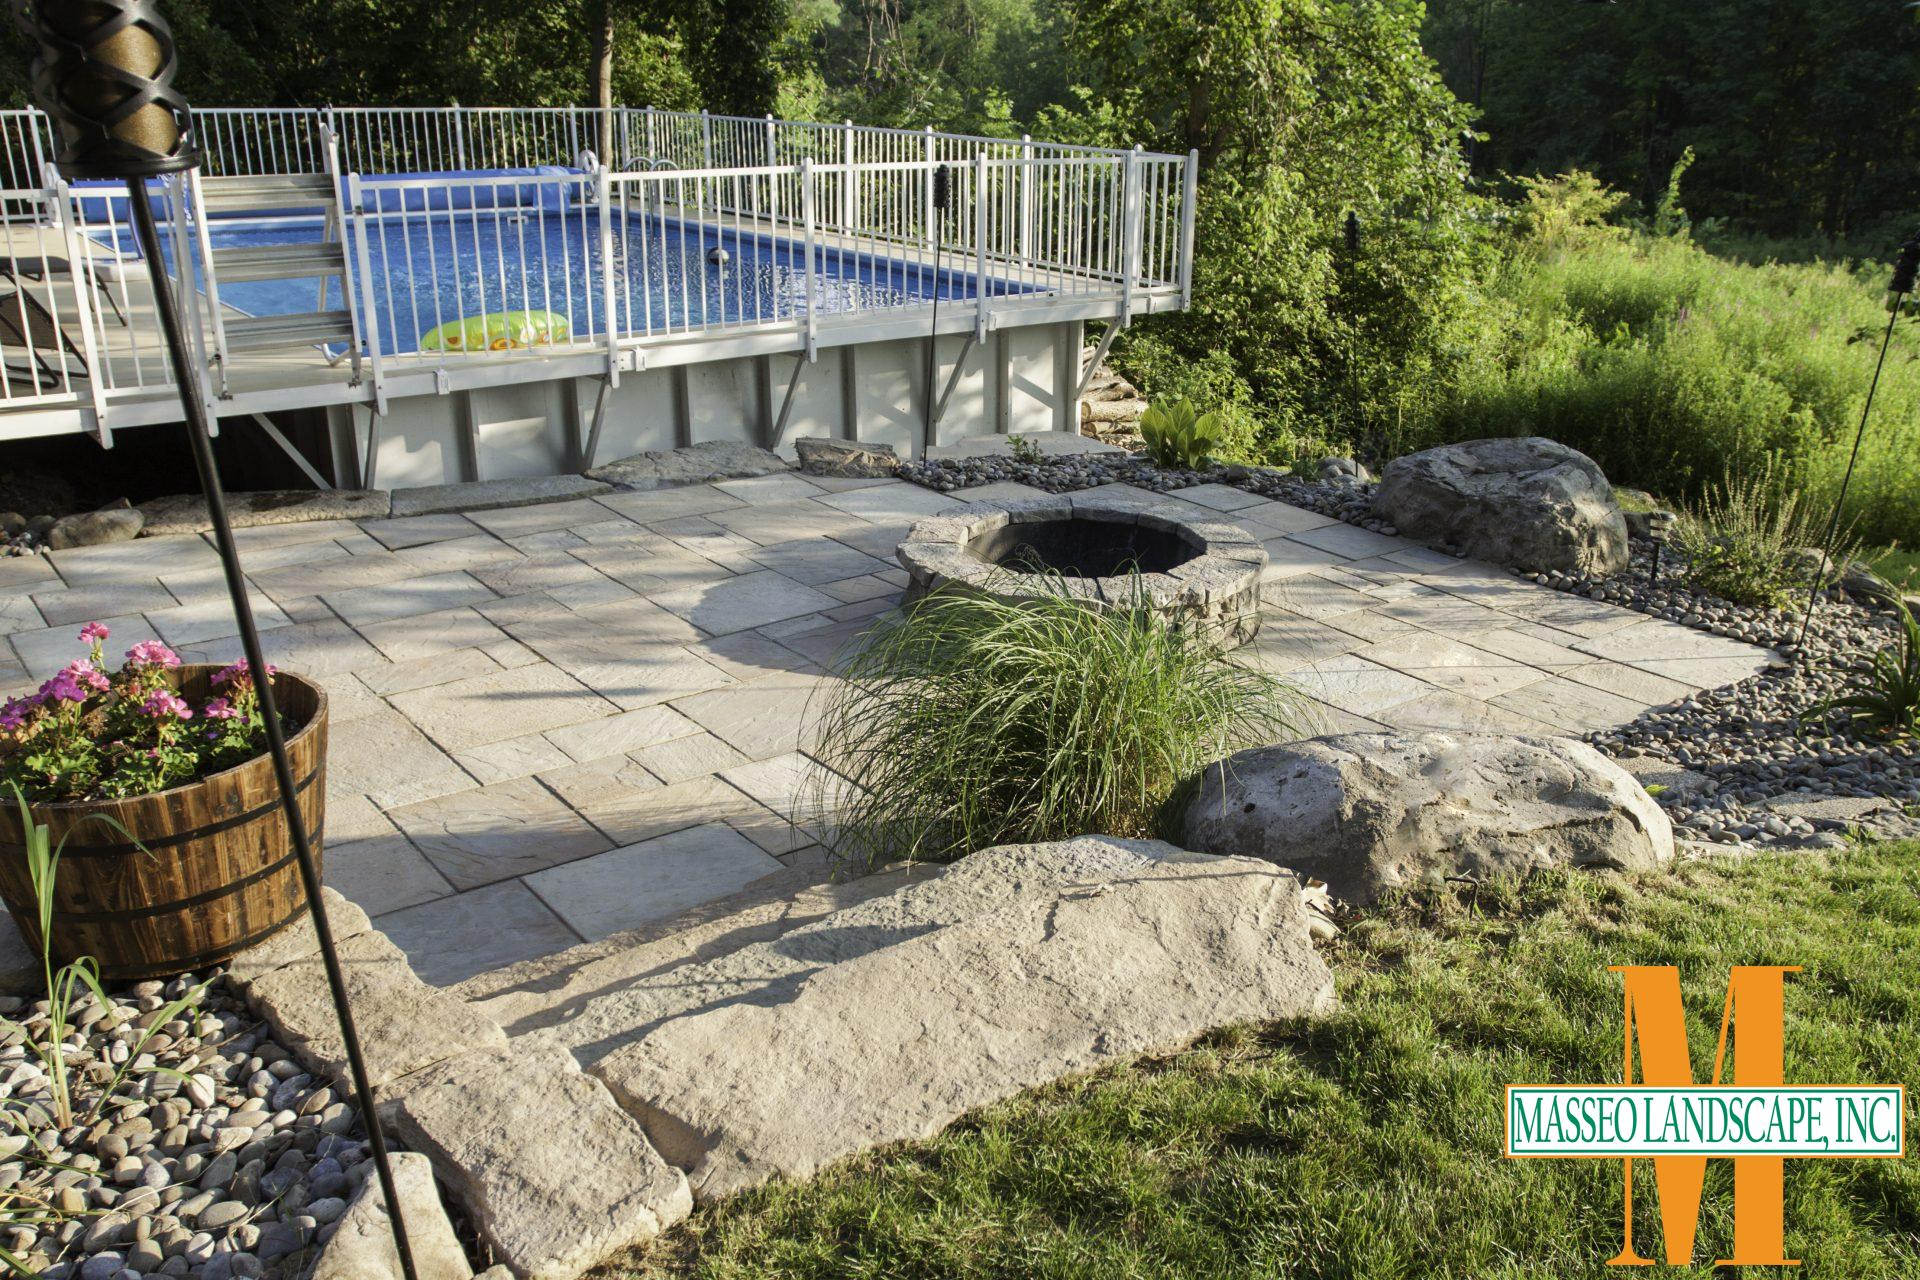 A precast concrete patio with geometric pavers and a circular fire pit beside a pool.